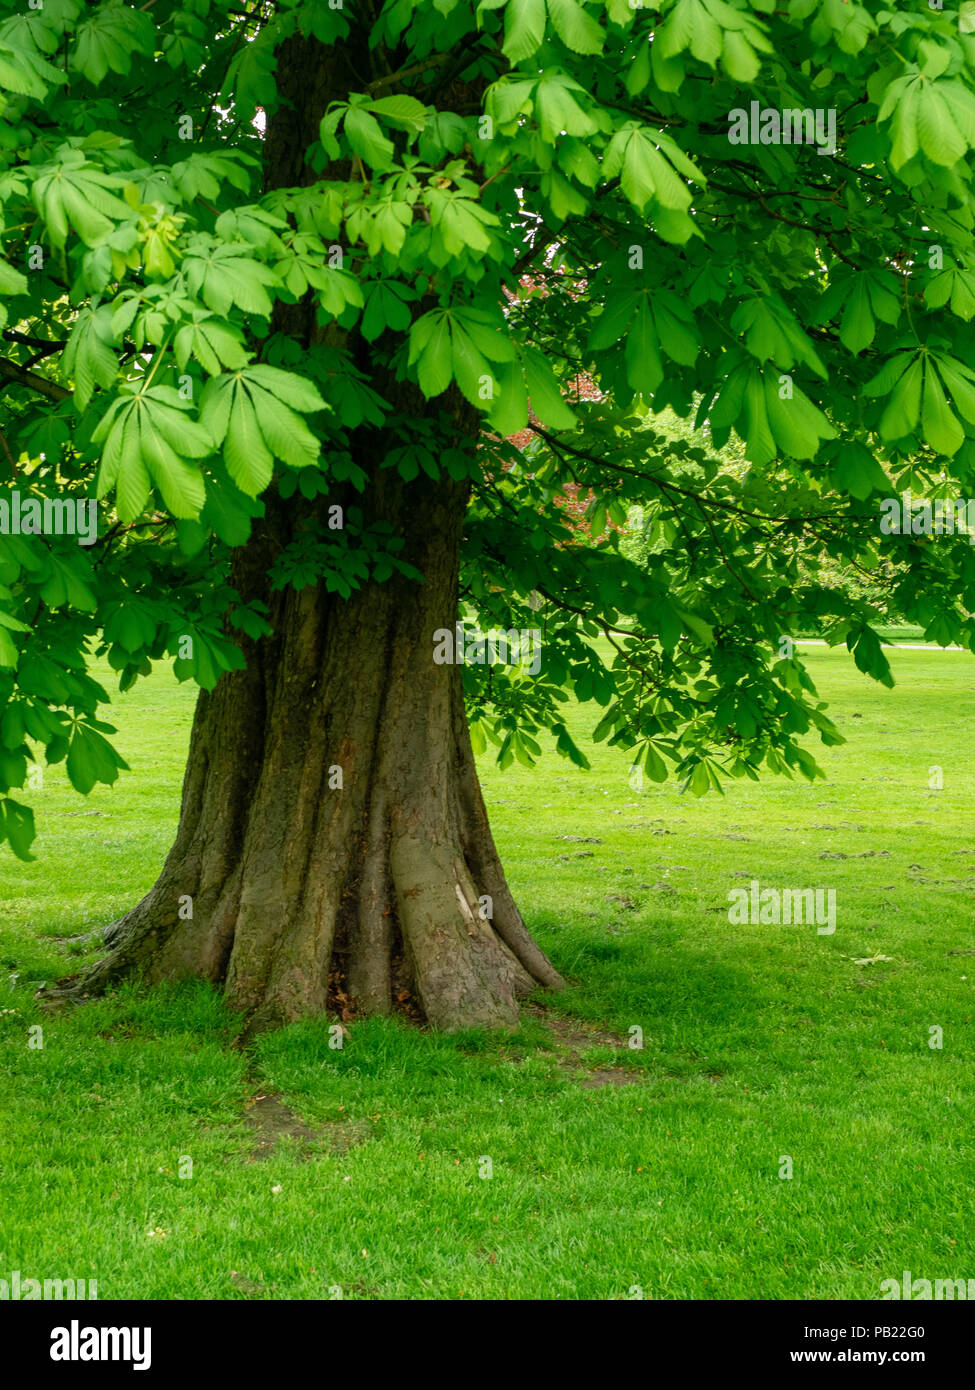 Horse Chestnut Tree, Aesculus hippocastanum, in spring with green leaves. - Stock Image